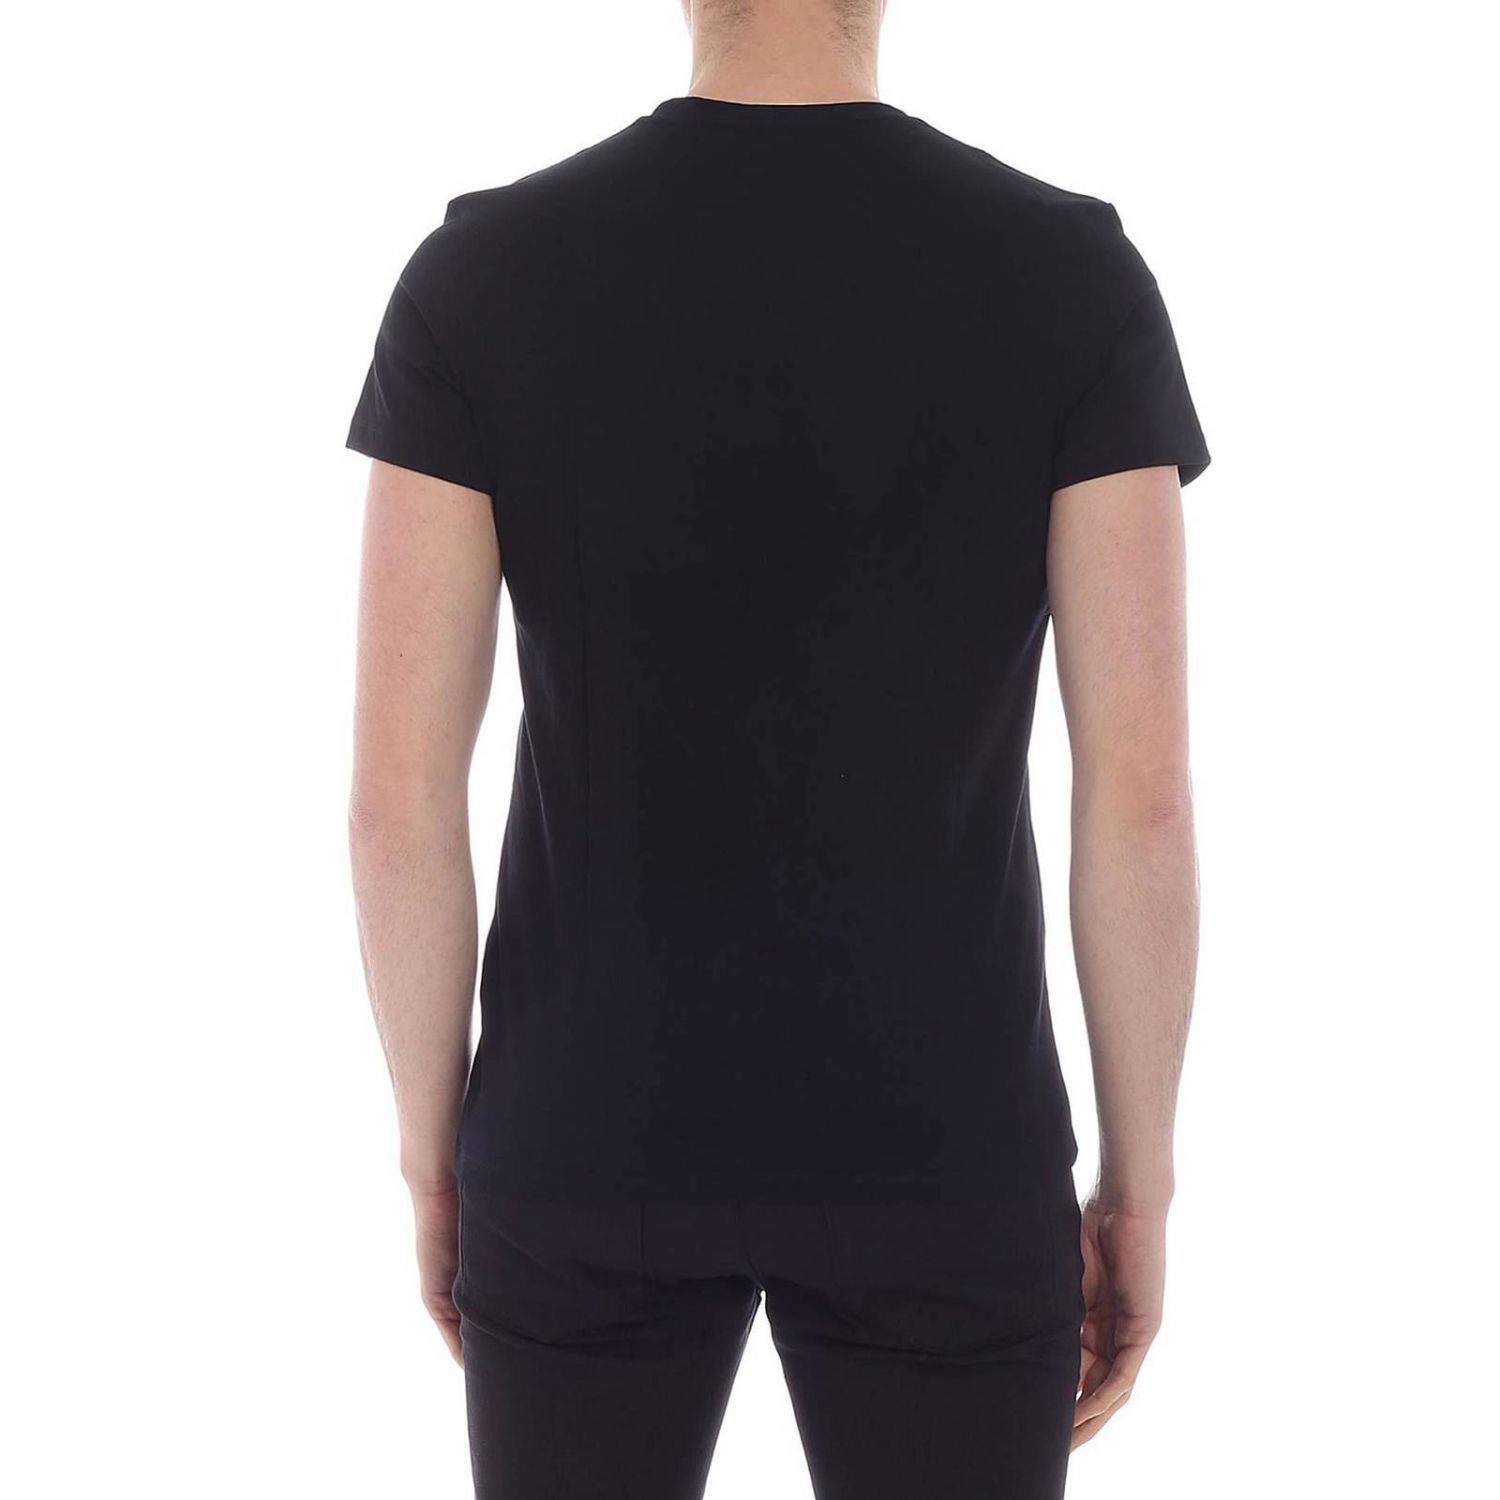 T-shirt men Balmain black 3